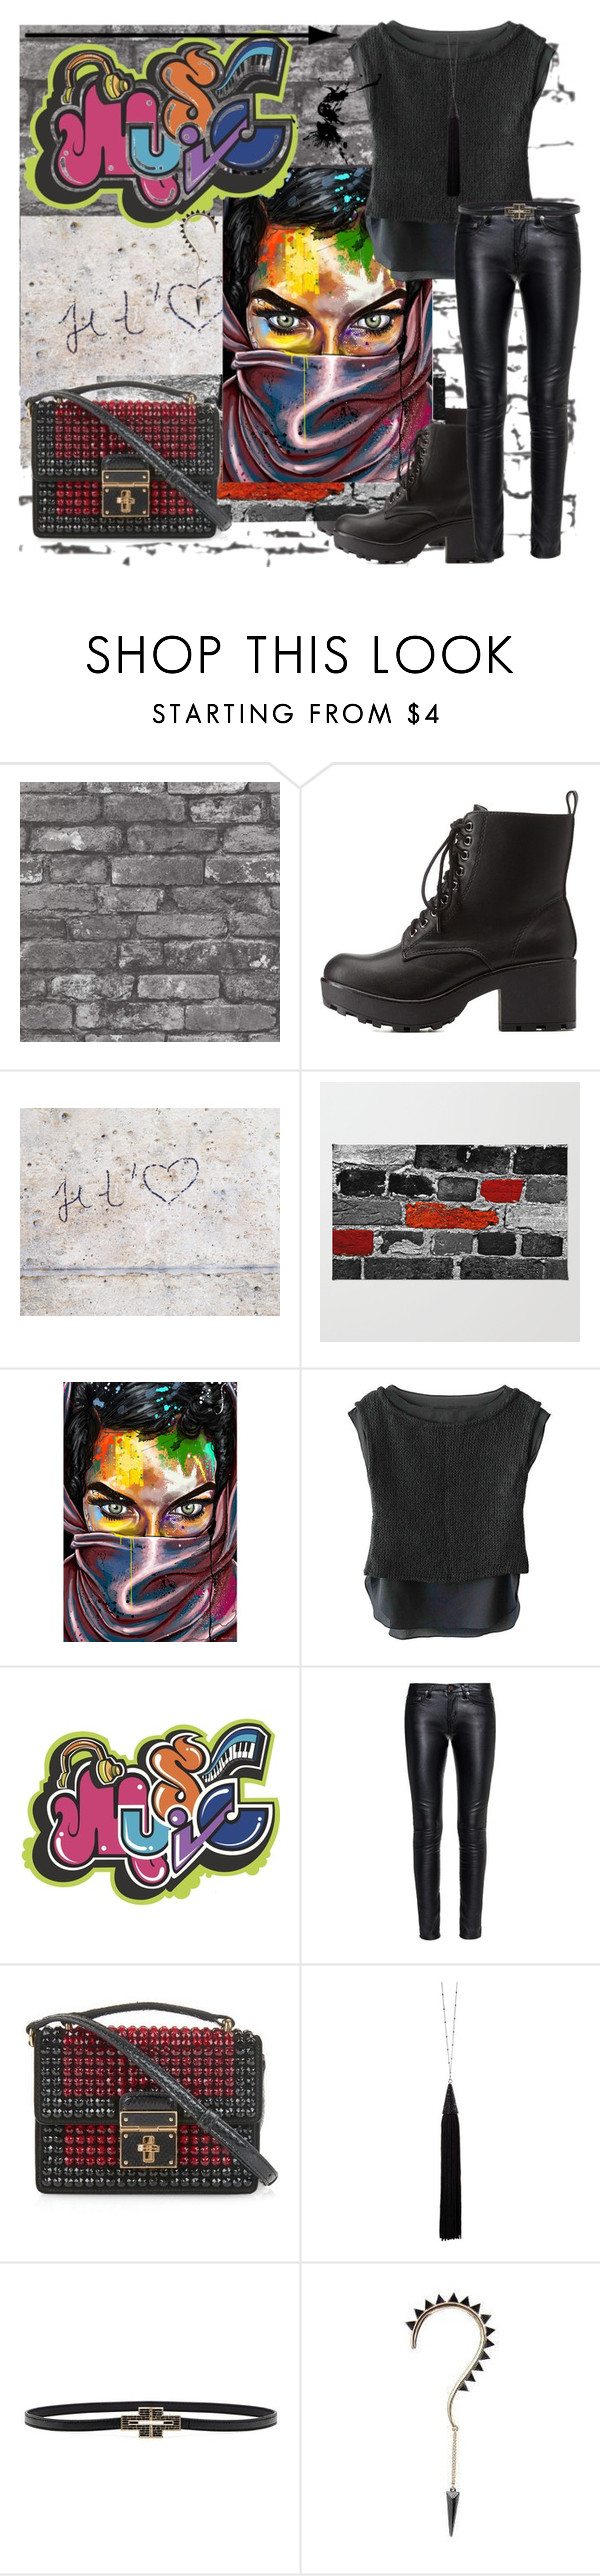 """""""Art In Other Forms."""" by stevie-wotton ❤ liked on Polyvore featuring Brewster Home Fashions, Charlotte Russe, Aime, J APOSTROPHE, Yves Saint Laurent, Dolce&Gabbana, Eddie Borgo and Tory Burch"""